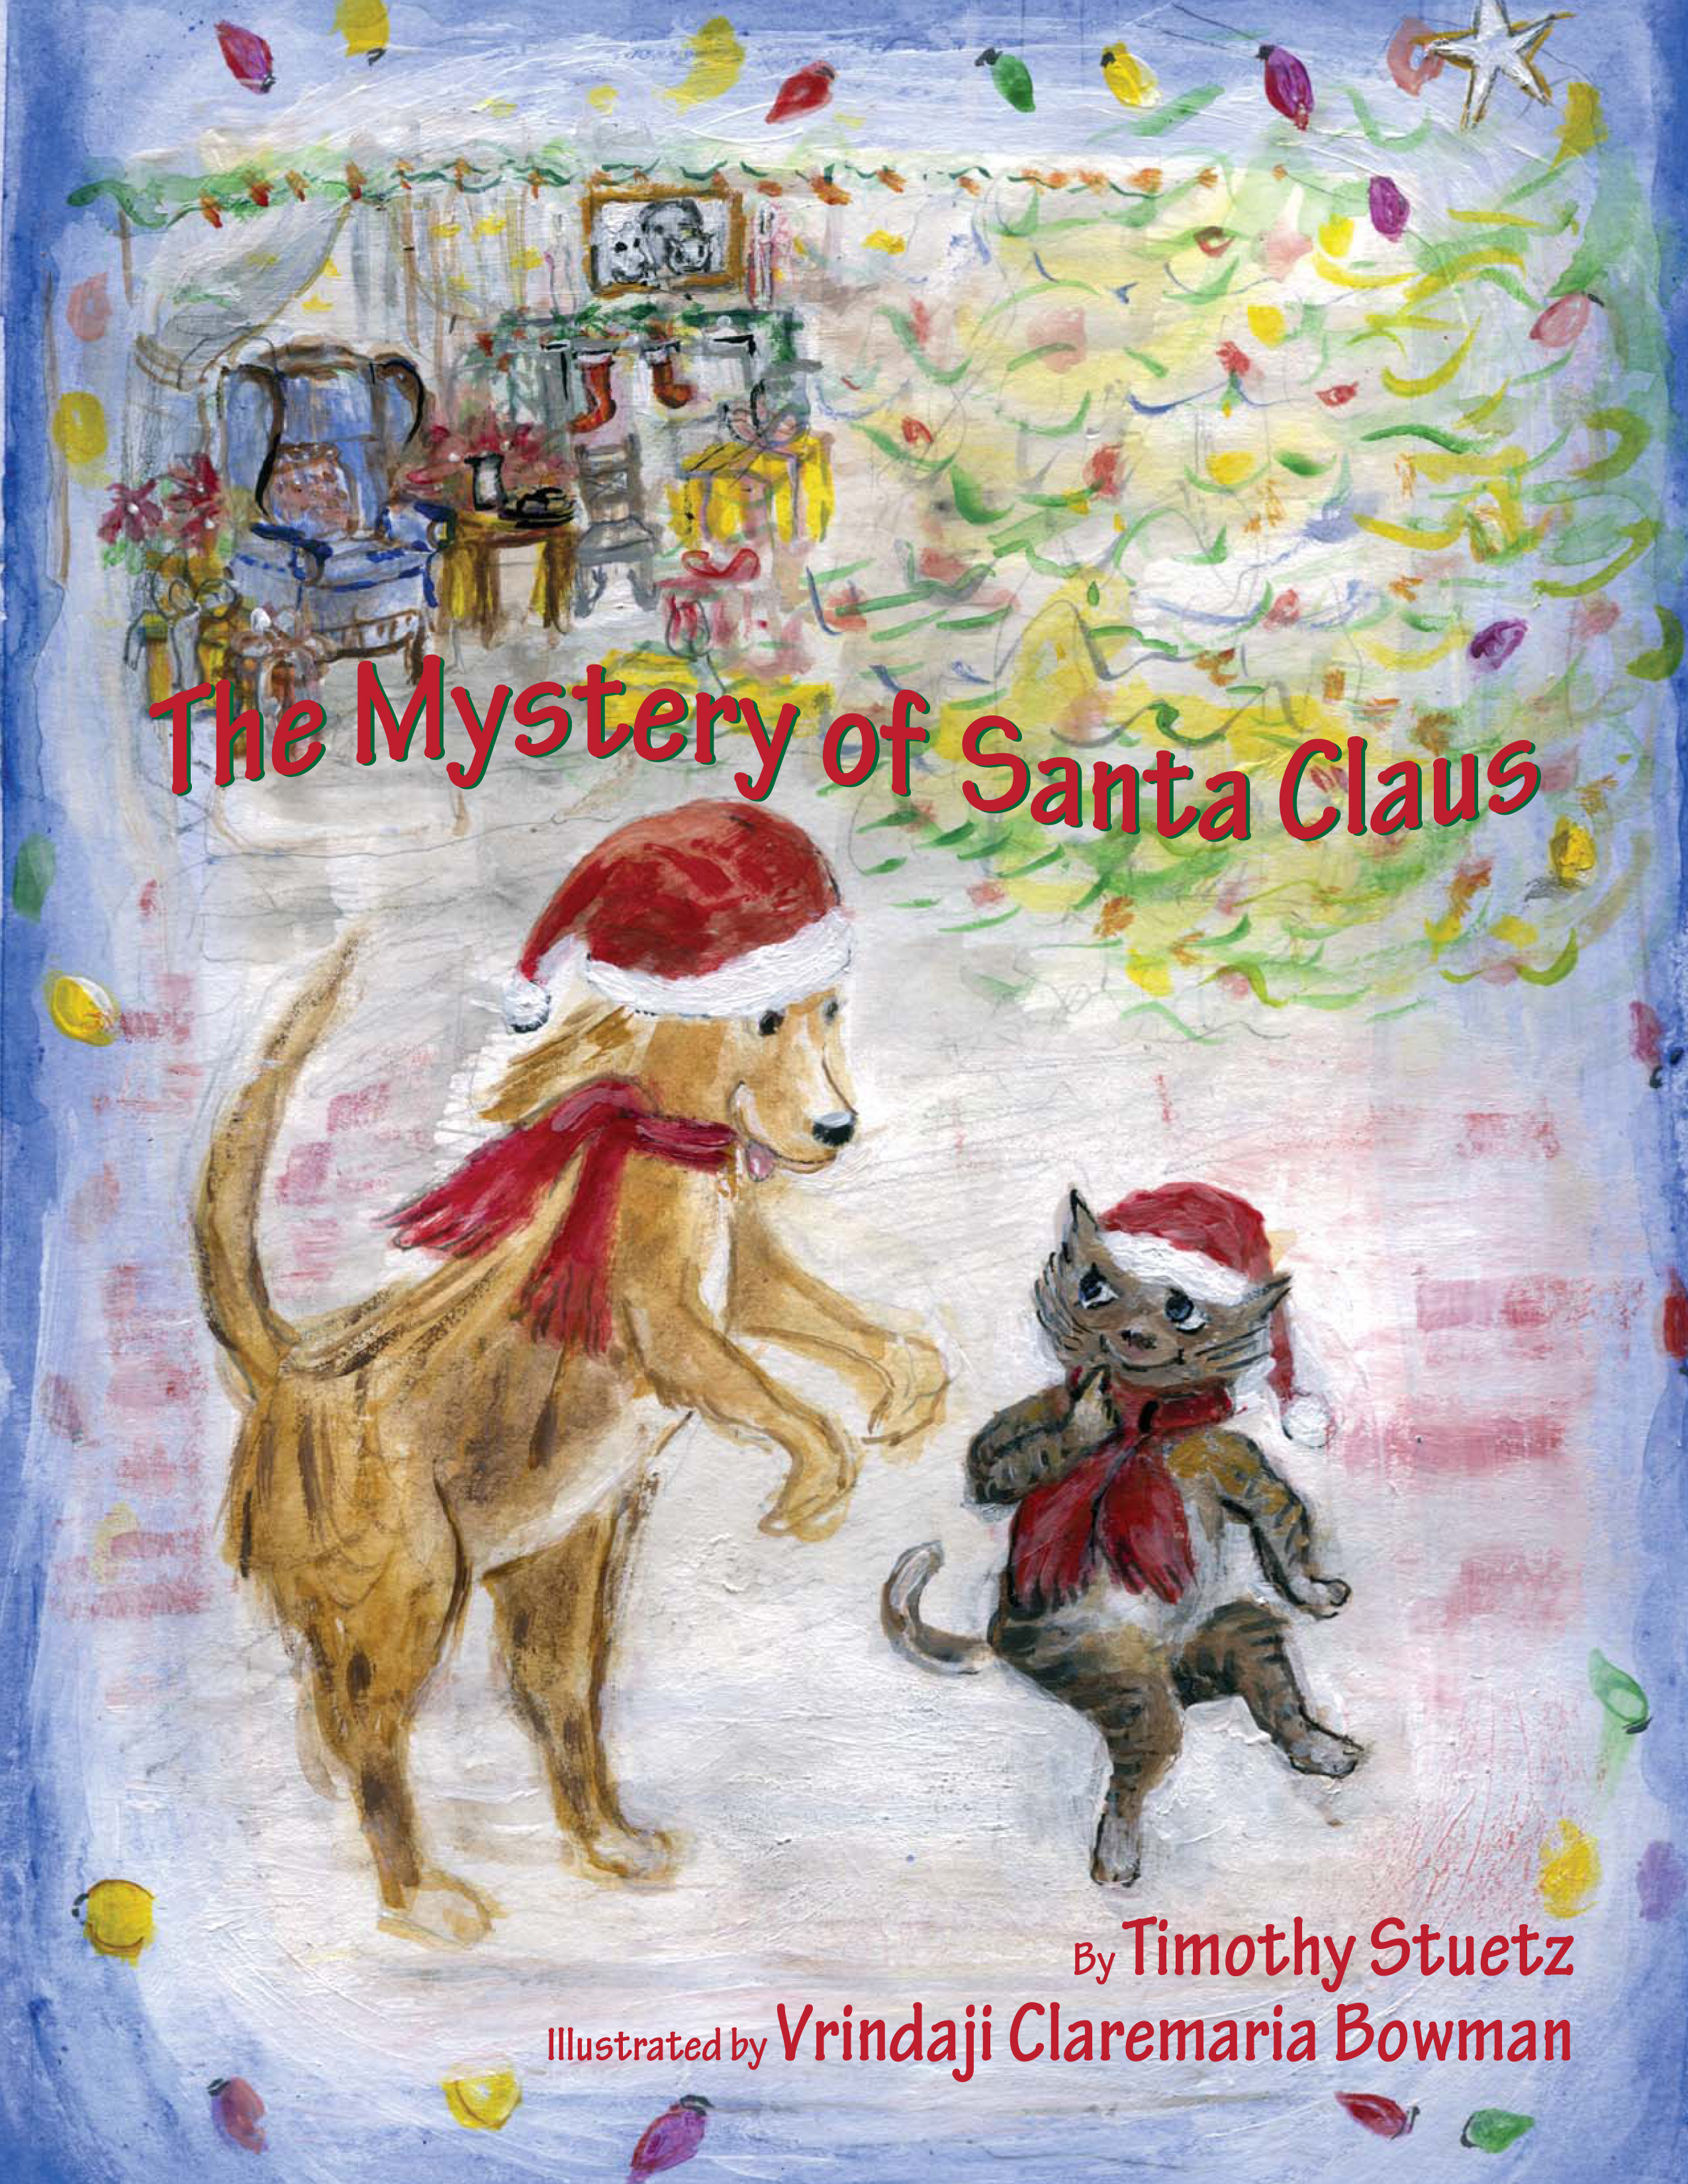 The Mystery of Santa Claus